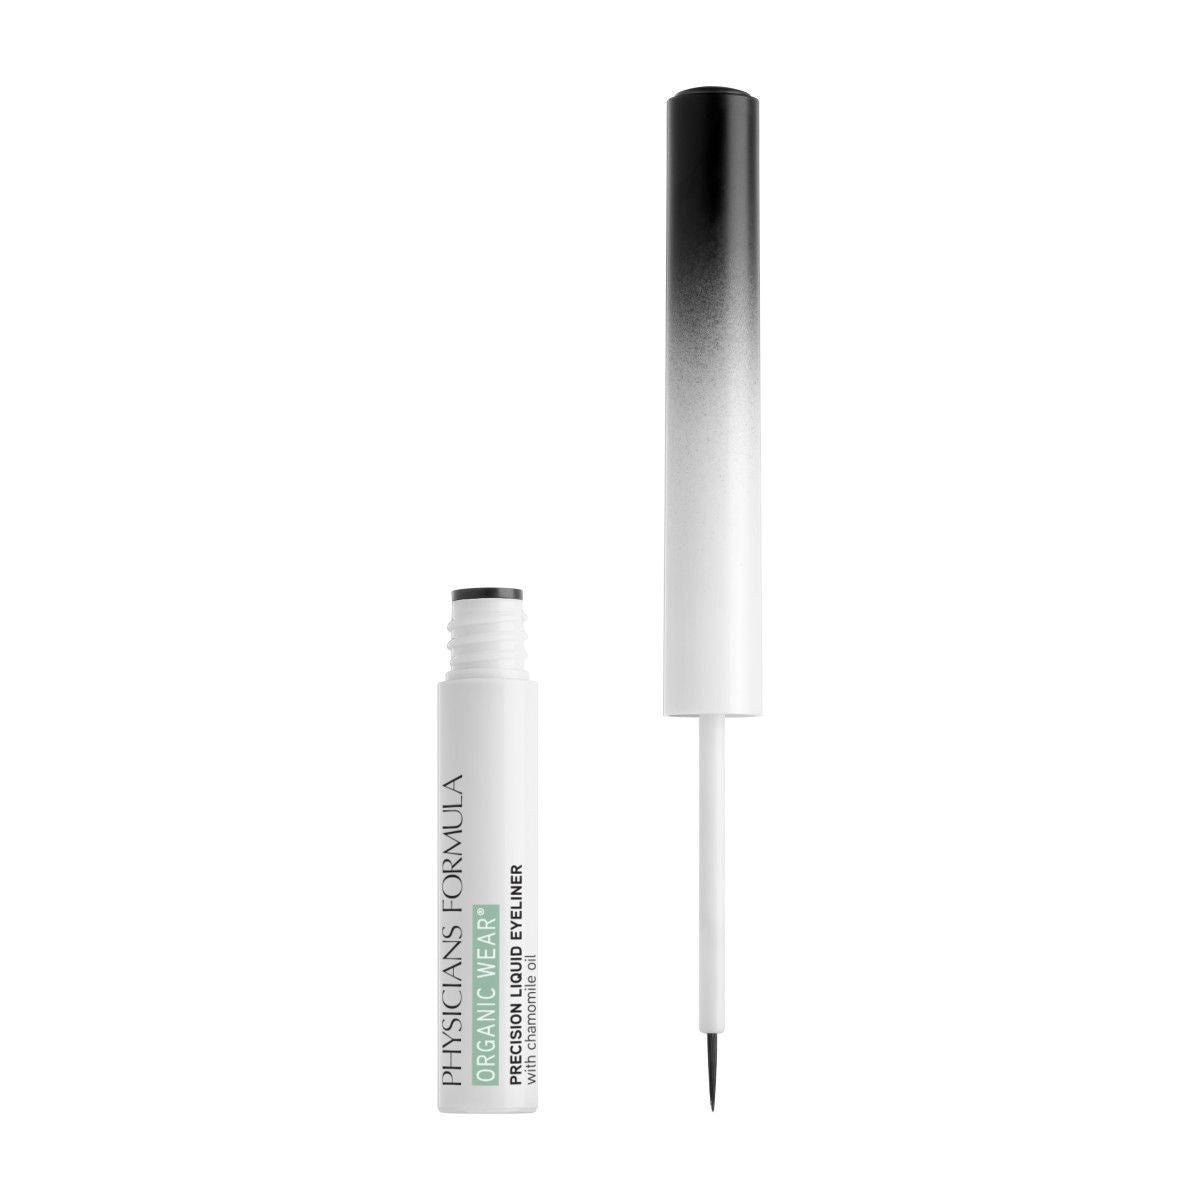 PRECISION LIQUID EYELINER ORGANIC WEAR BLACK - PHYSICIANS FORMULA